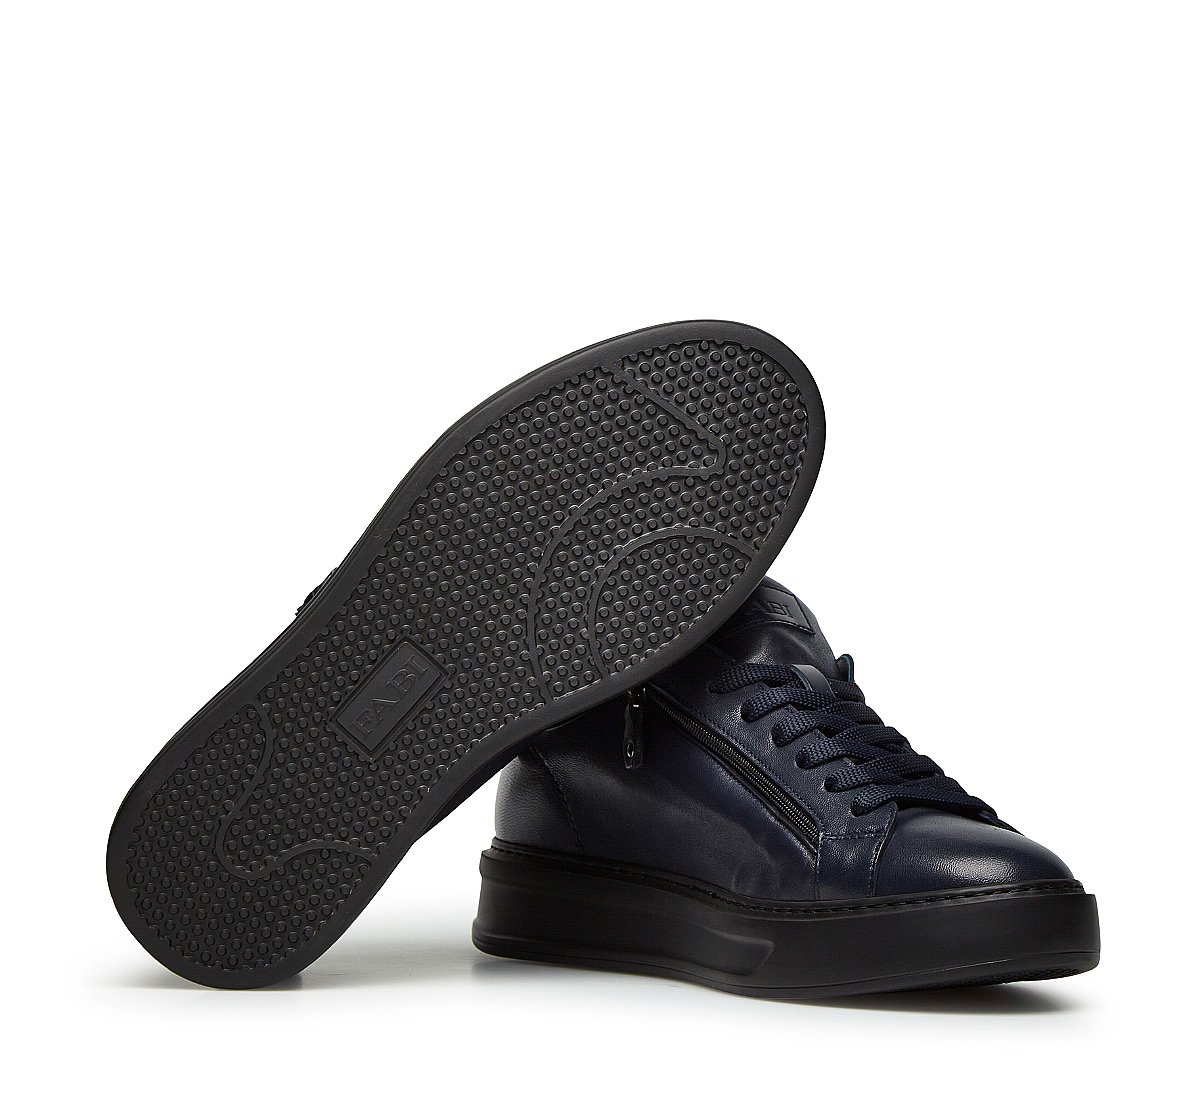 Sneakers in soft nappa leather